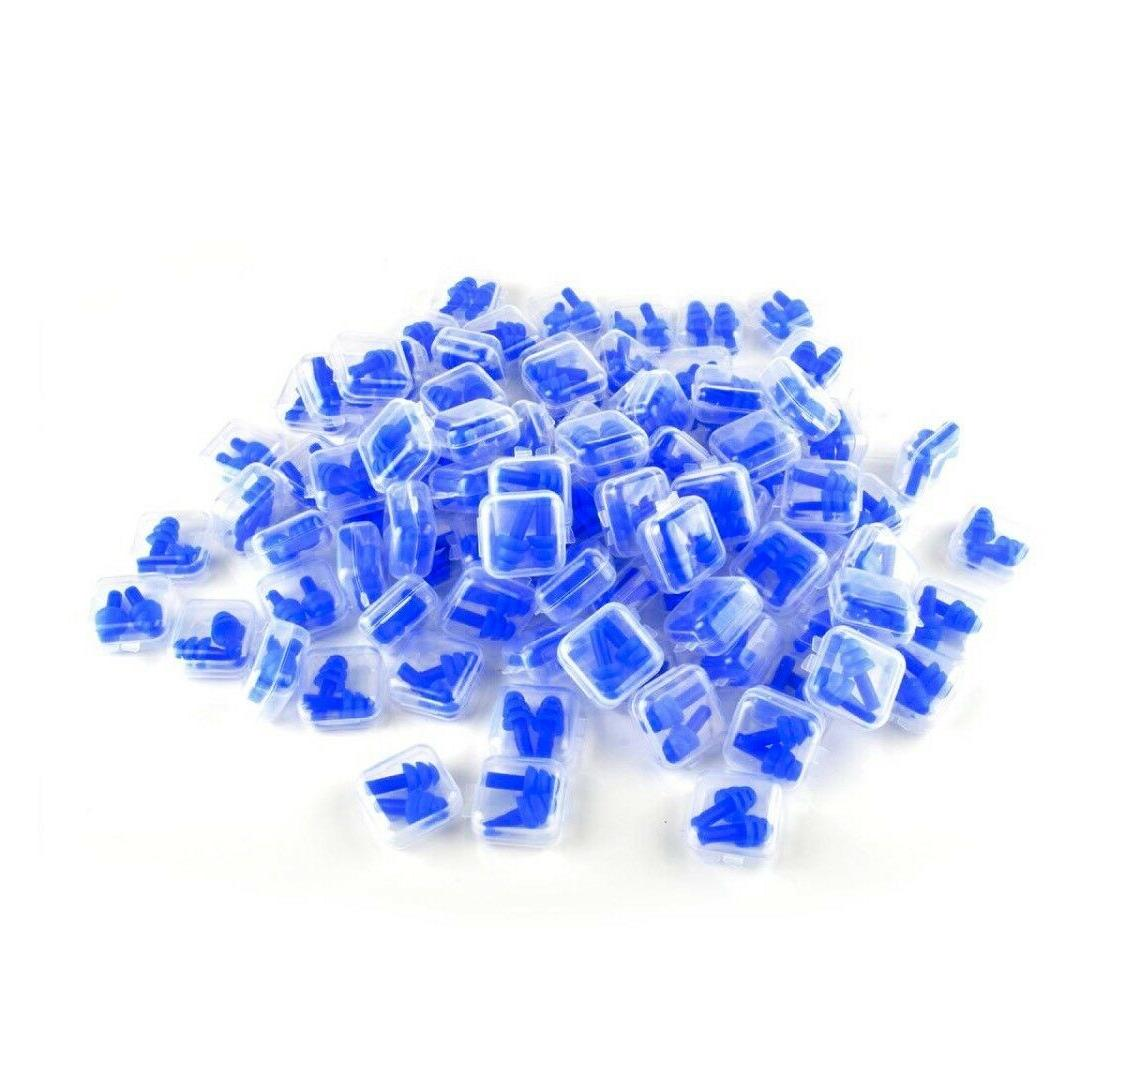 ear plugs 10 pairs blue silicone ear